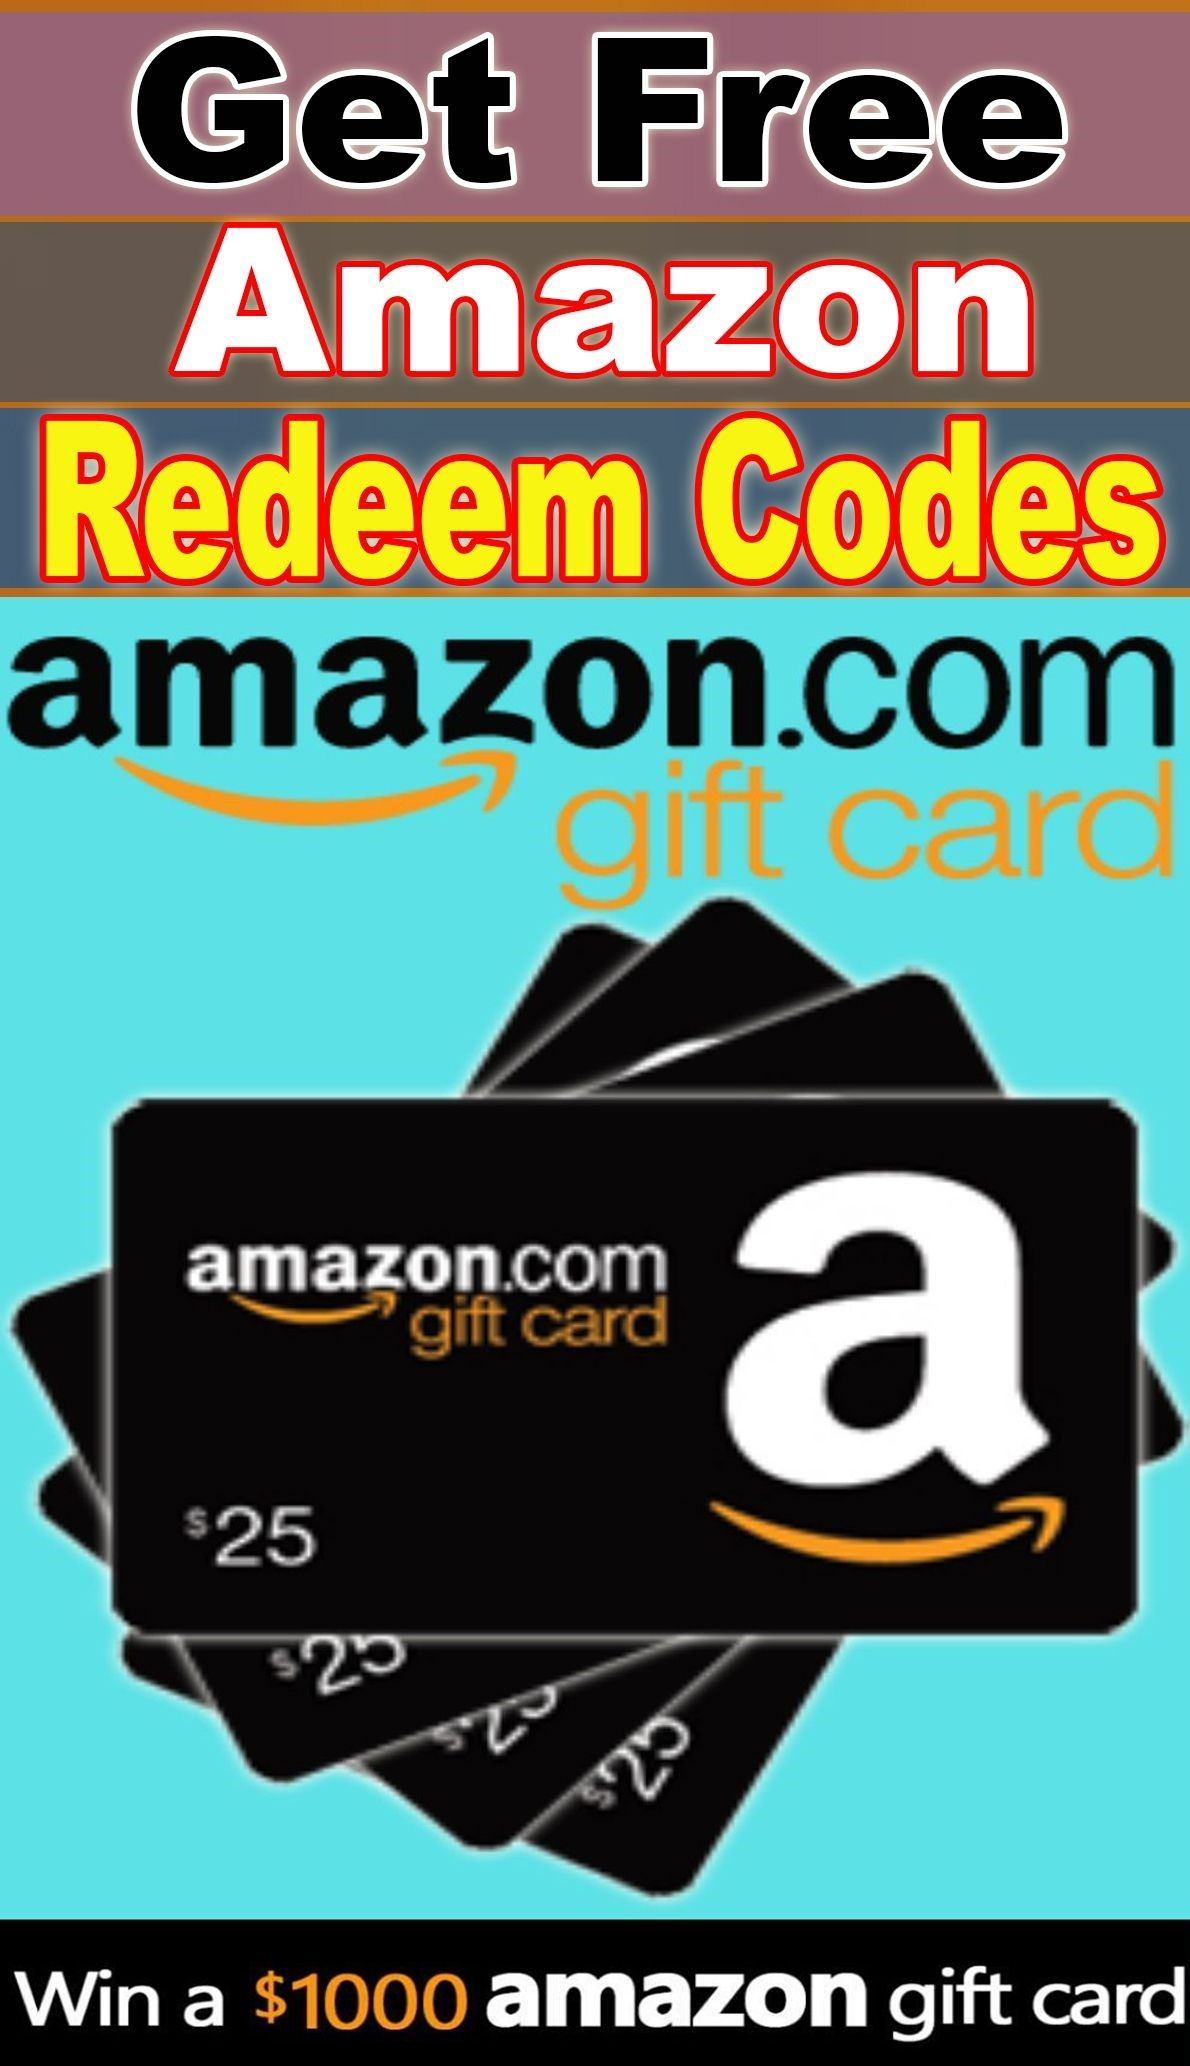 Amazon Gift Card Giveaway Free Amazon Codes Update Amazongiftcard Freeamazongiftcardcodes In 2020 Amazon Gift Card Free Amazon Gift Cards Free Amazon Products